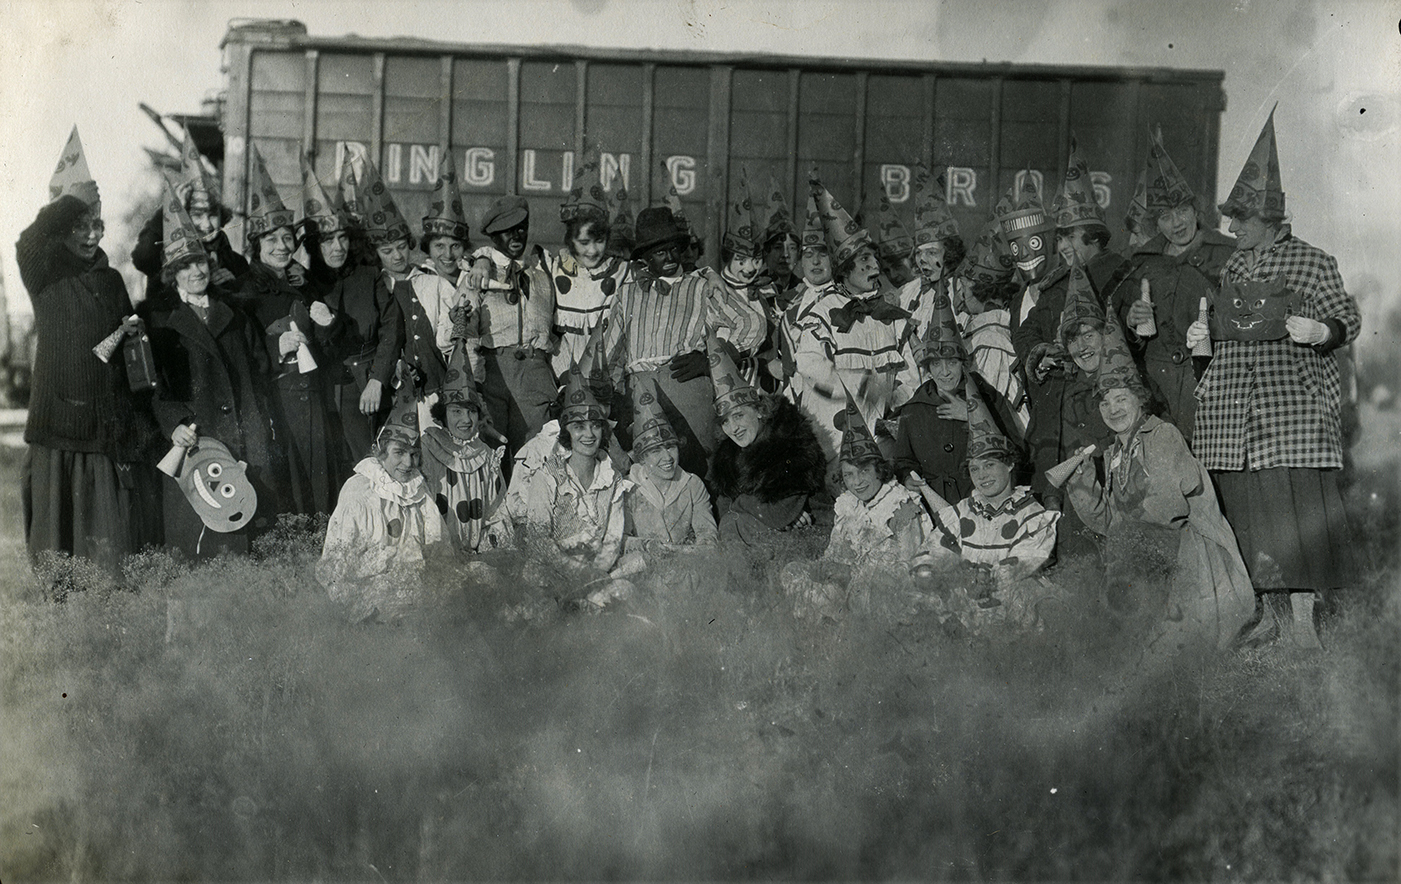 RINGLING BROHERS CIRCUS PHOTO CIRCA 1920